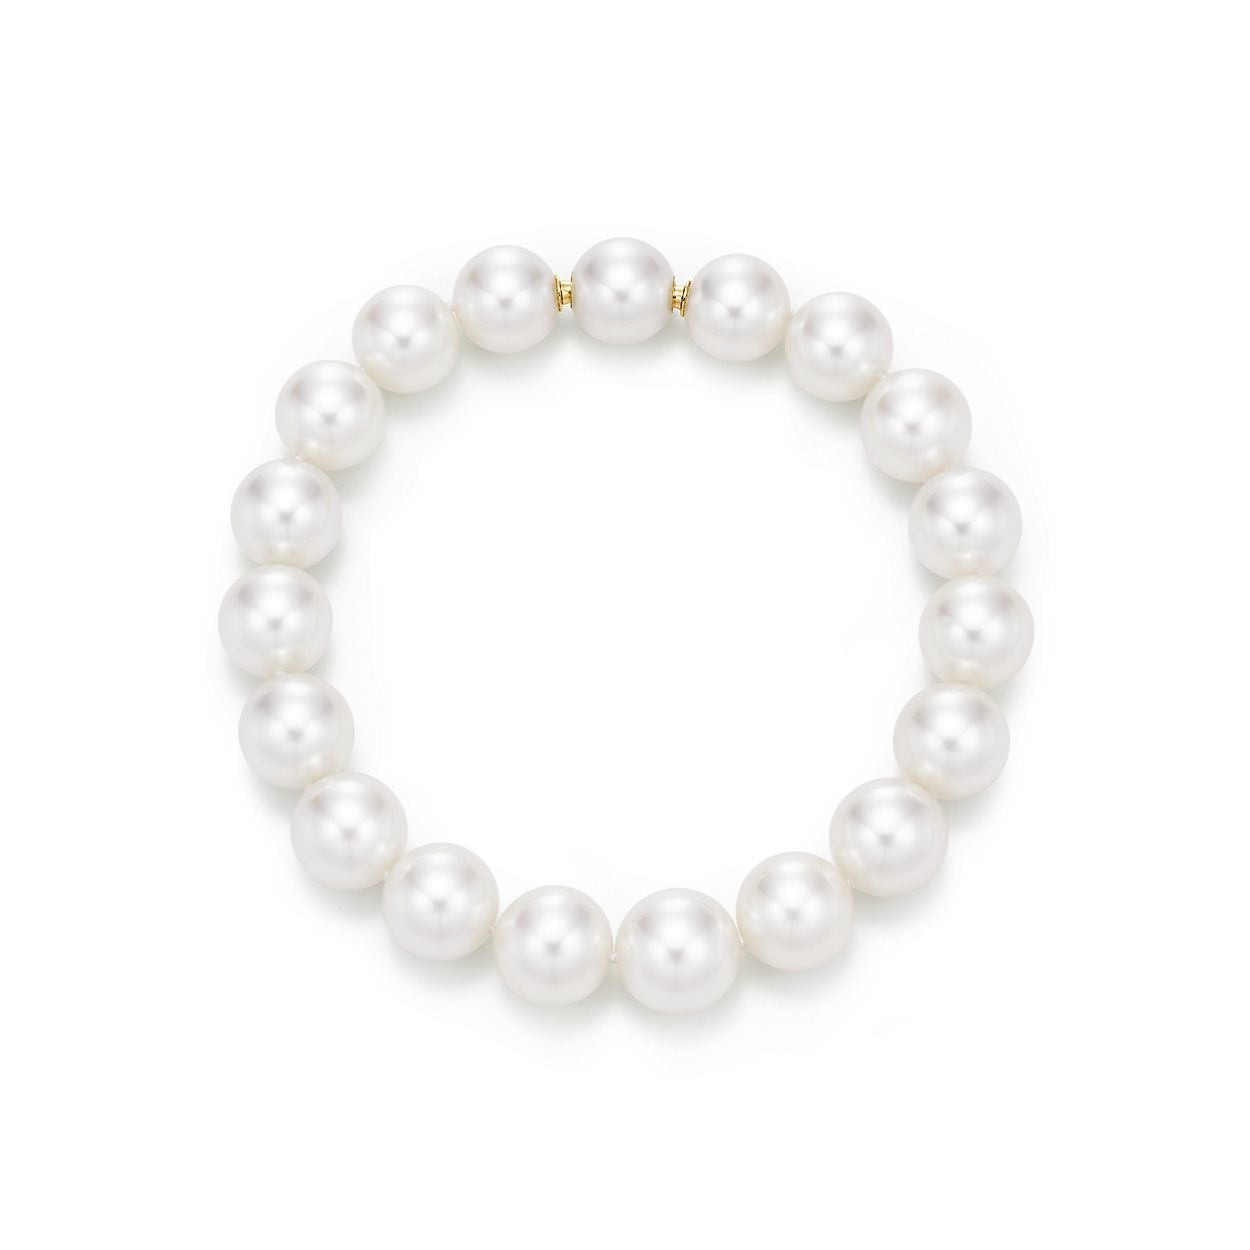 Tiffany South Sea Le Pearl Bracelet